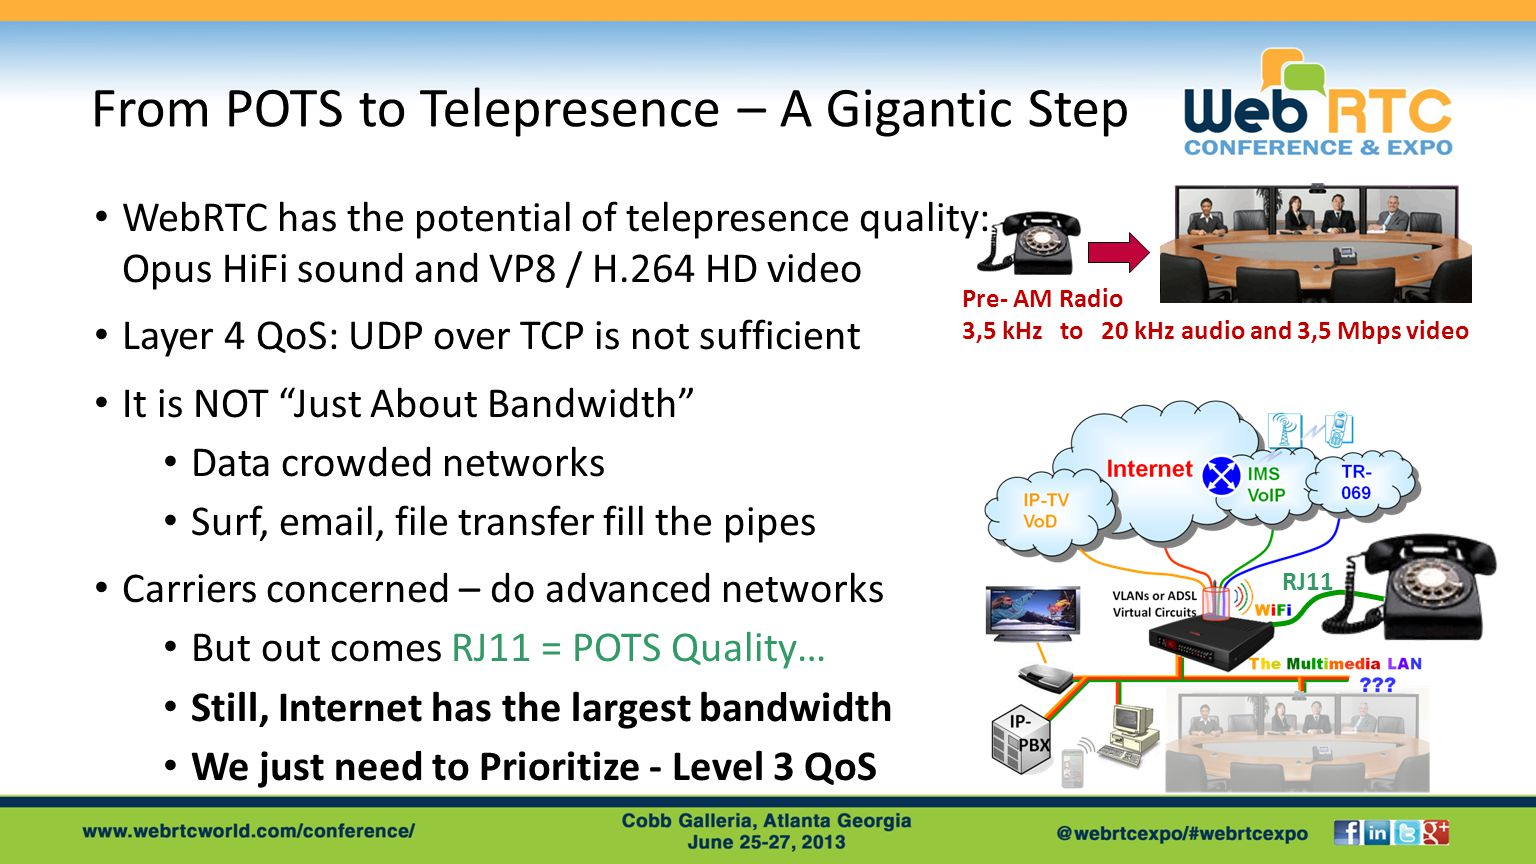 From POTS to Telepresence – A Gigantic Step WebRTC has the potential of telepresence quality: Opus HiFi sound and VP8 / H.264 HD video Layer 4 QoS: UDP over TCP is not sufficient It is NOT Just About Bandwidth Data crowded networks Surf, email, file transfer fill the pipes Carriers concerned – do advanced networks But out comes RJ11 = POTS Quality… Still, Internet has the largest bandwidth We just need to Prioritize - Level 3 QoS Pre- AM Radio 3,5 kHz to 20 kHz audio and 3,5 Mbps video RJ11